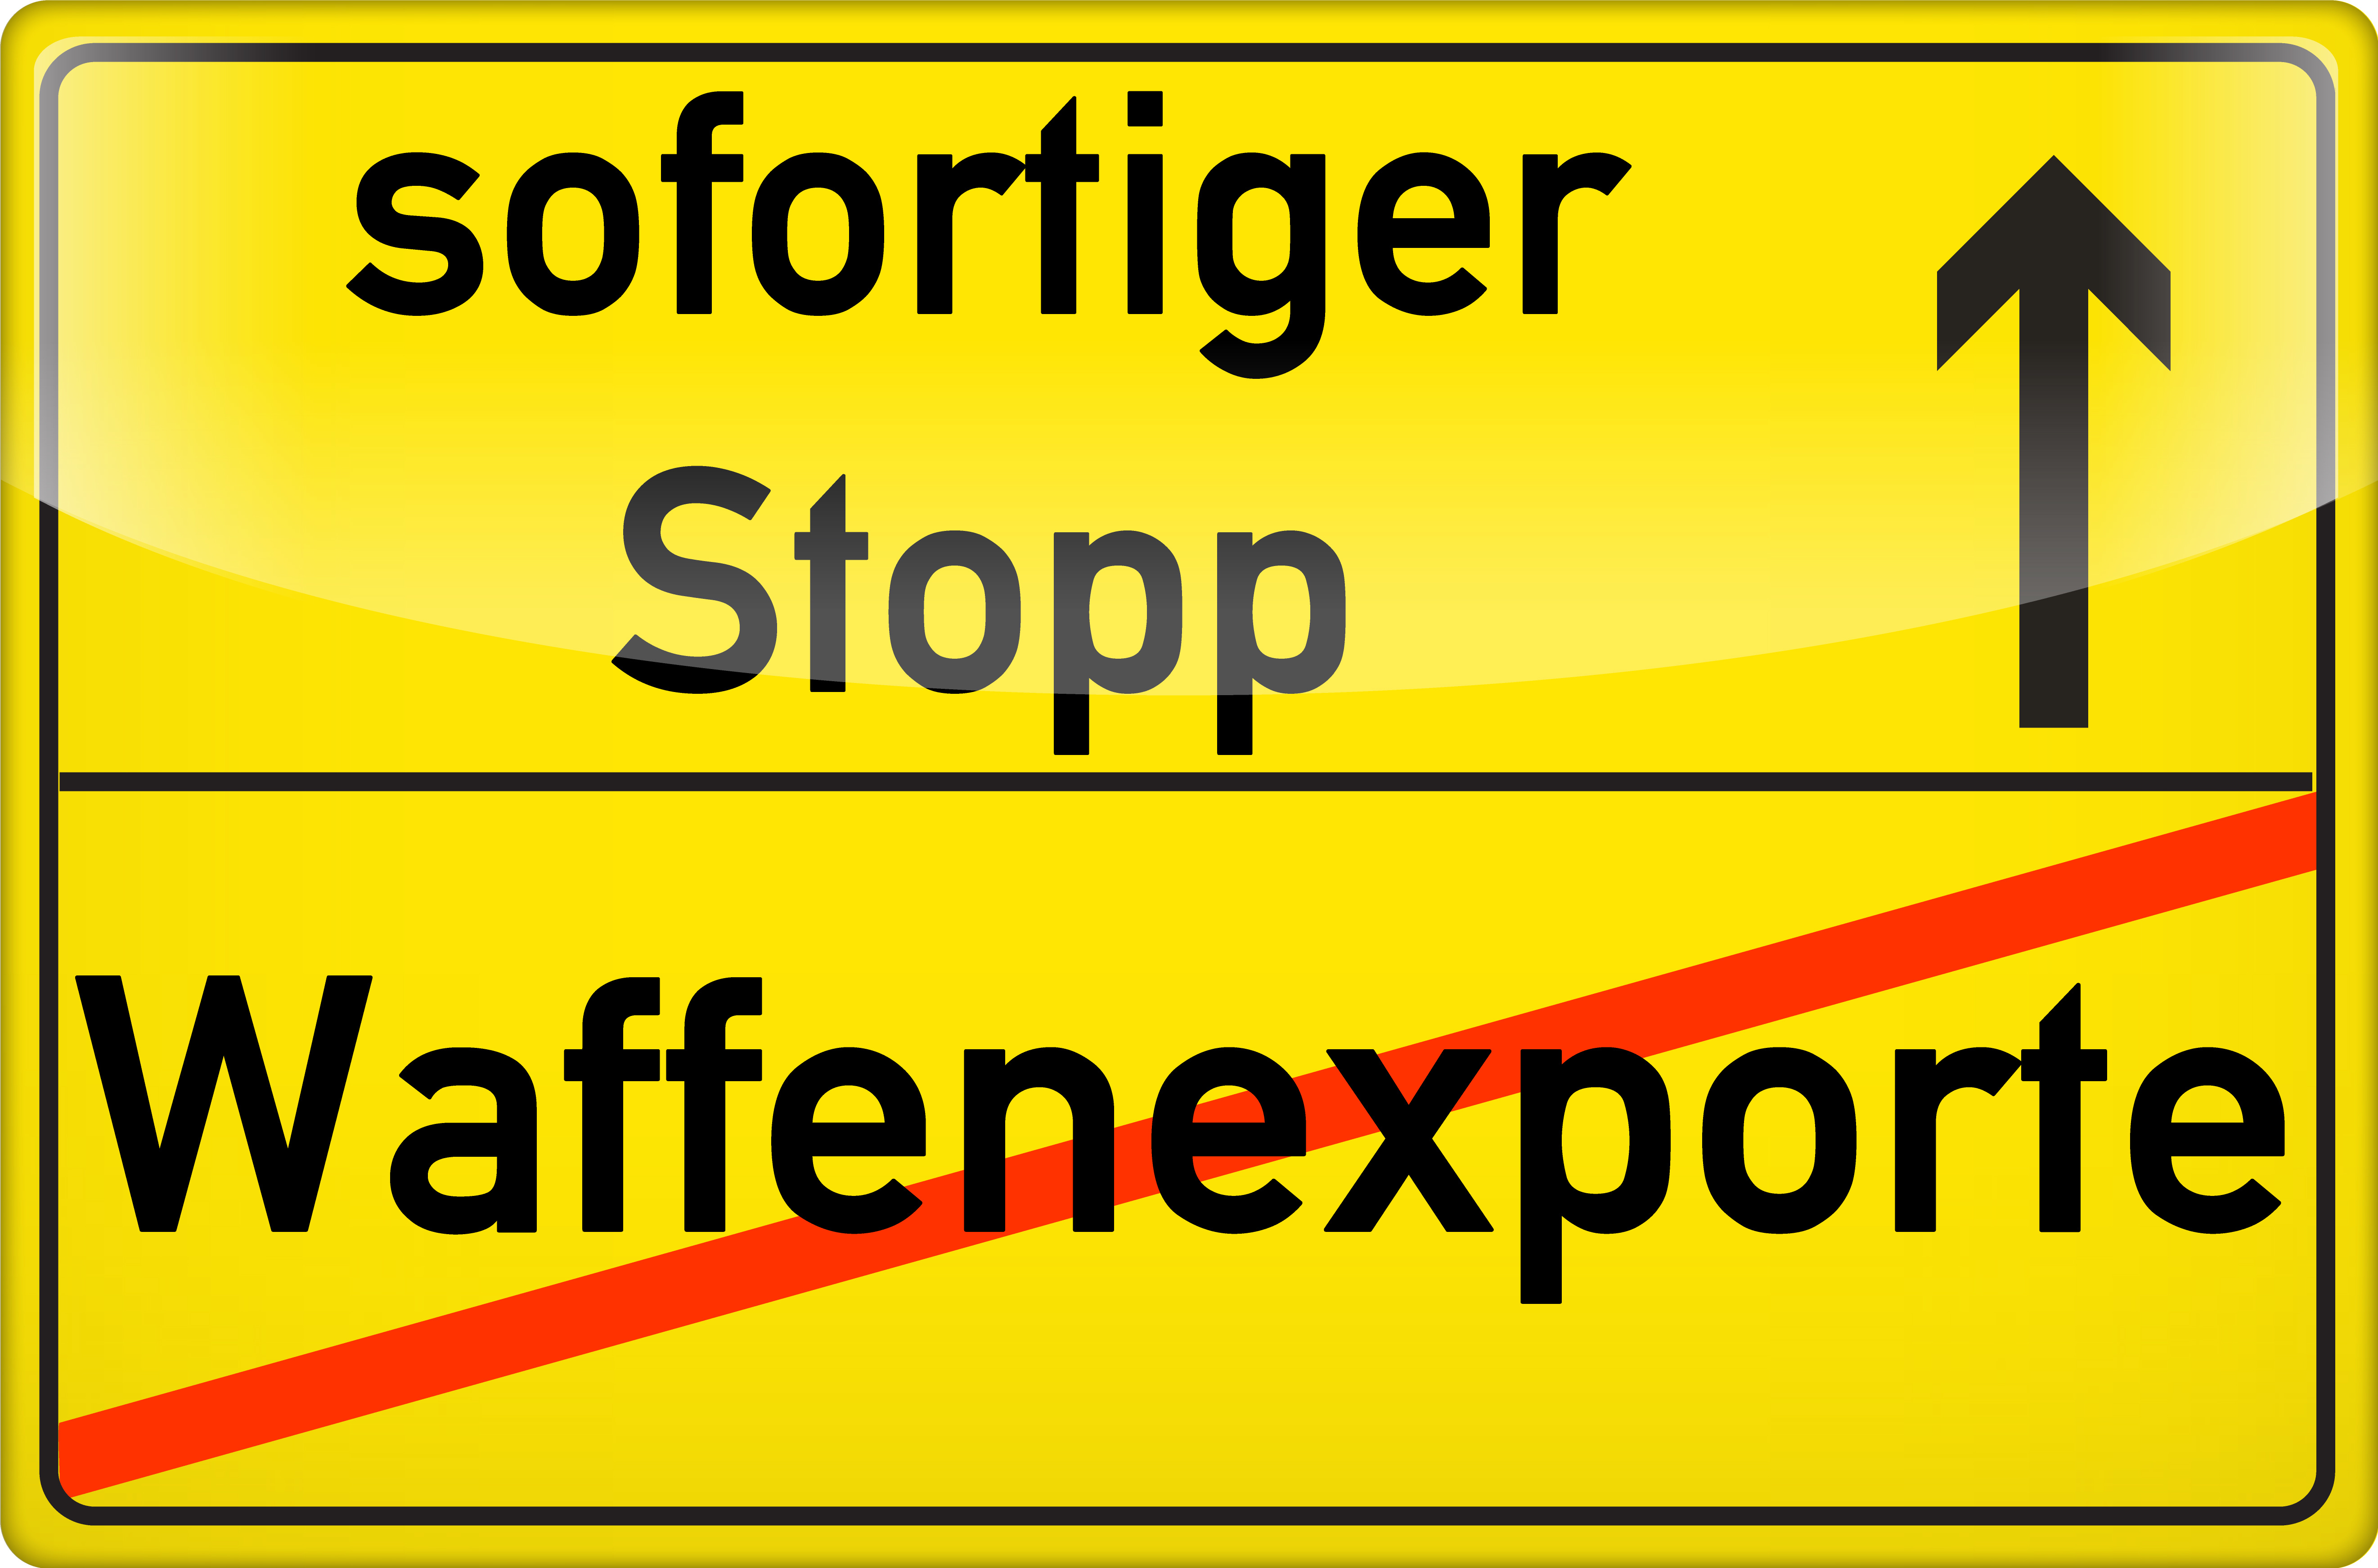 International trade must be fair and equitable. The emerging protectionism and unfair trade practices present new challenges that must be met with a policy of strength. Where diplomacy and old ties no longer help, new alliances must also be considered. Trade with emerging and developing countries requires particular sensitivity, and the EU must not exploit […]